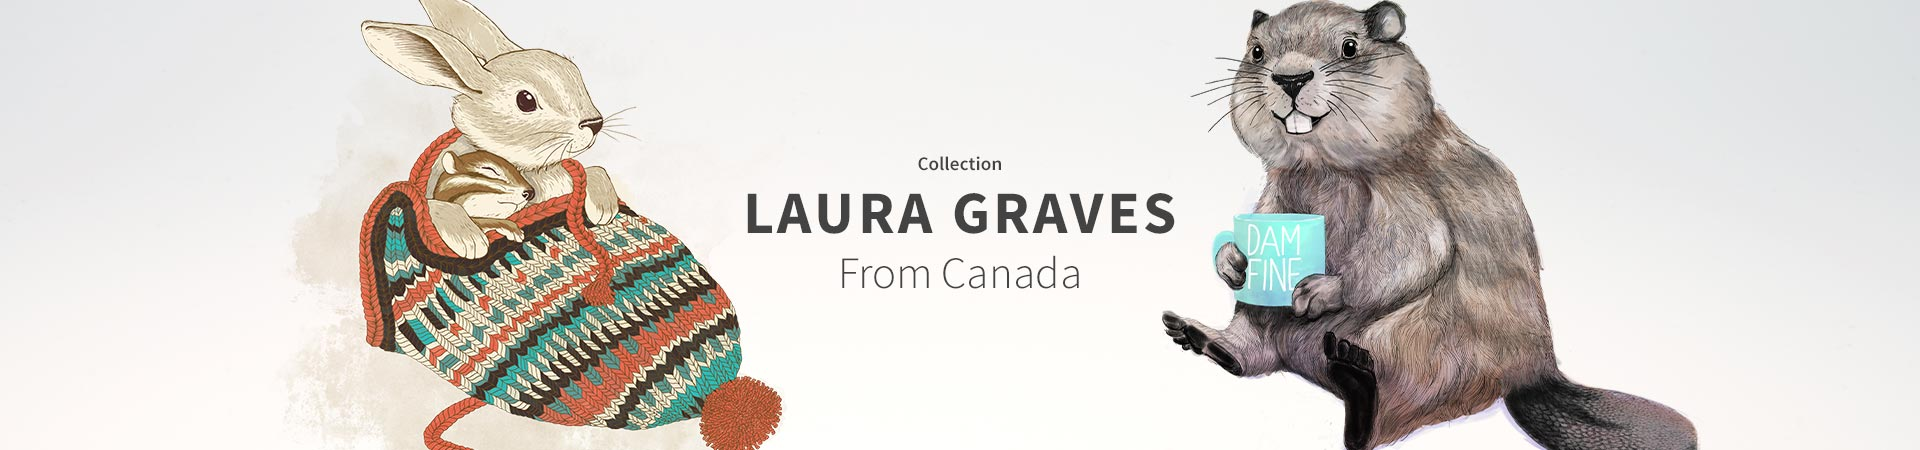 Collection Laura Graves